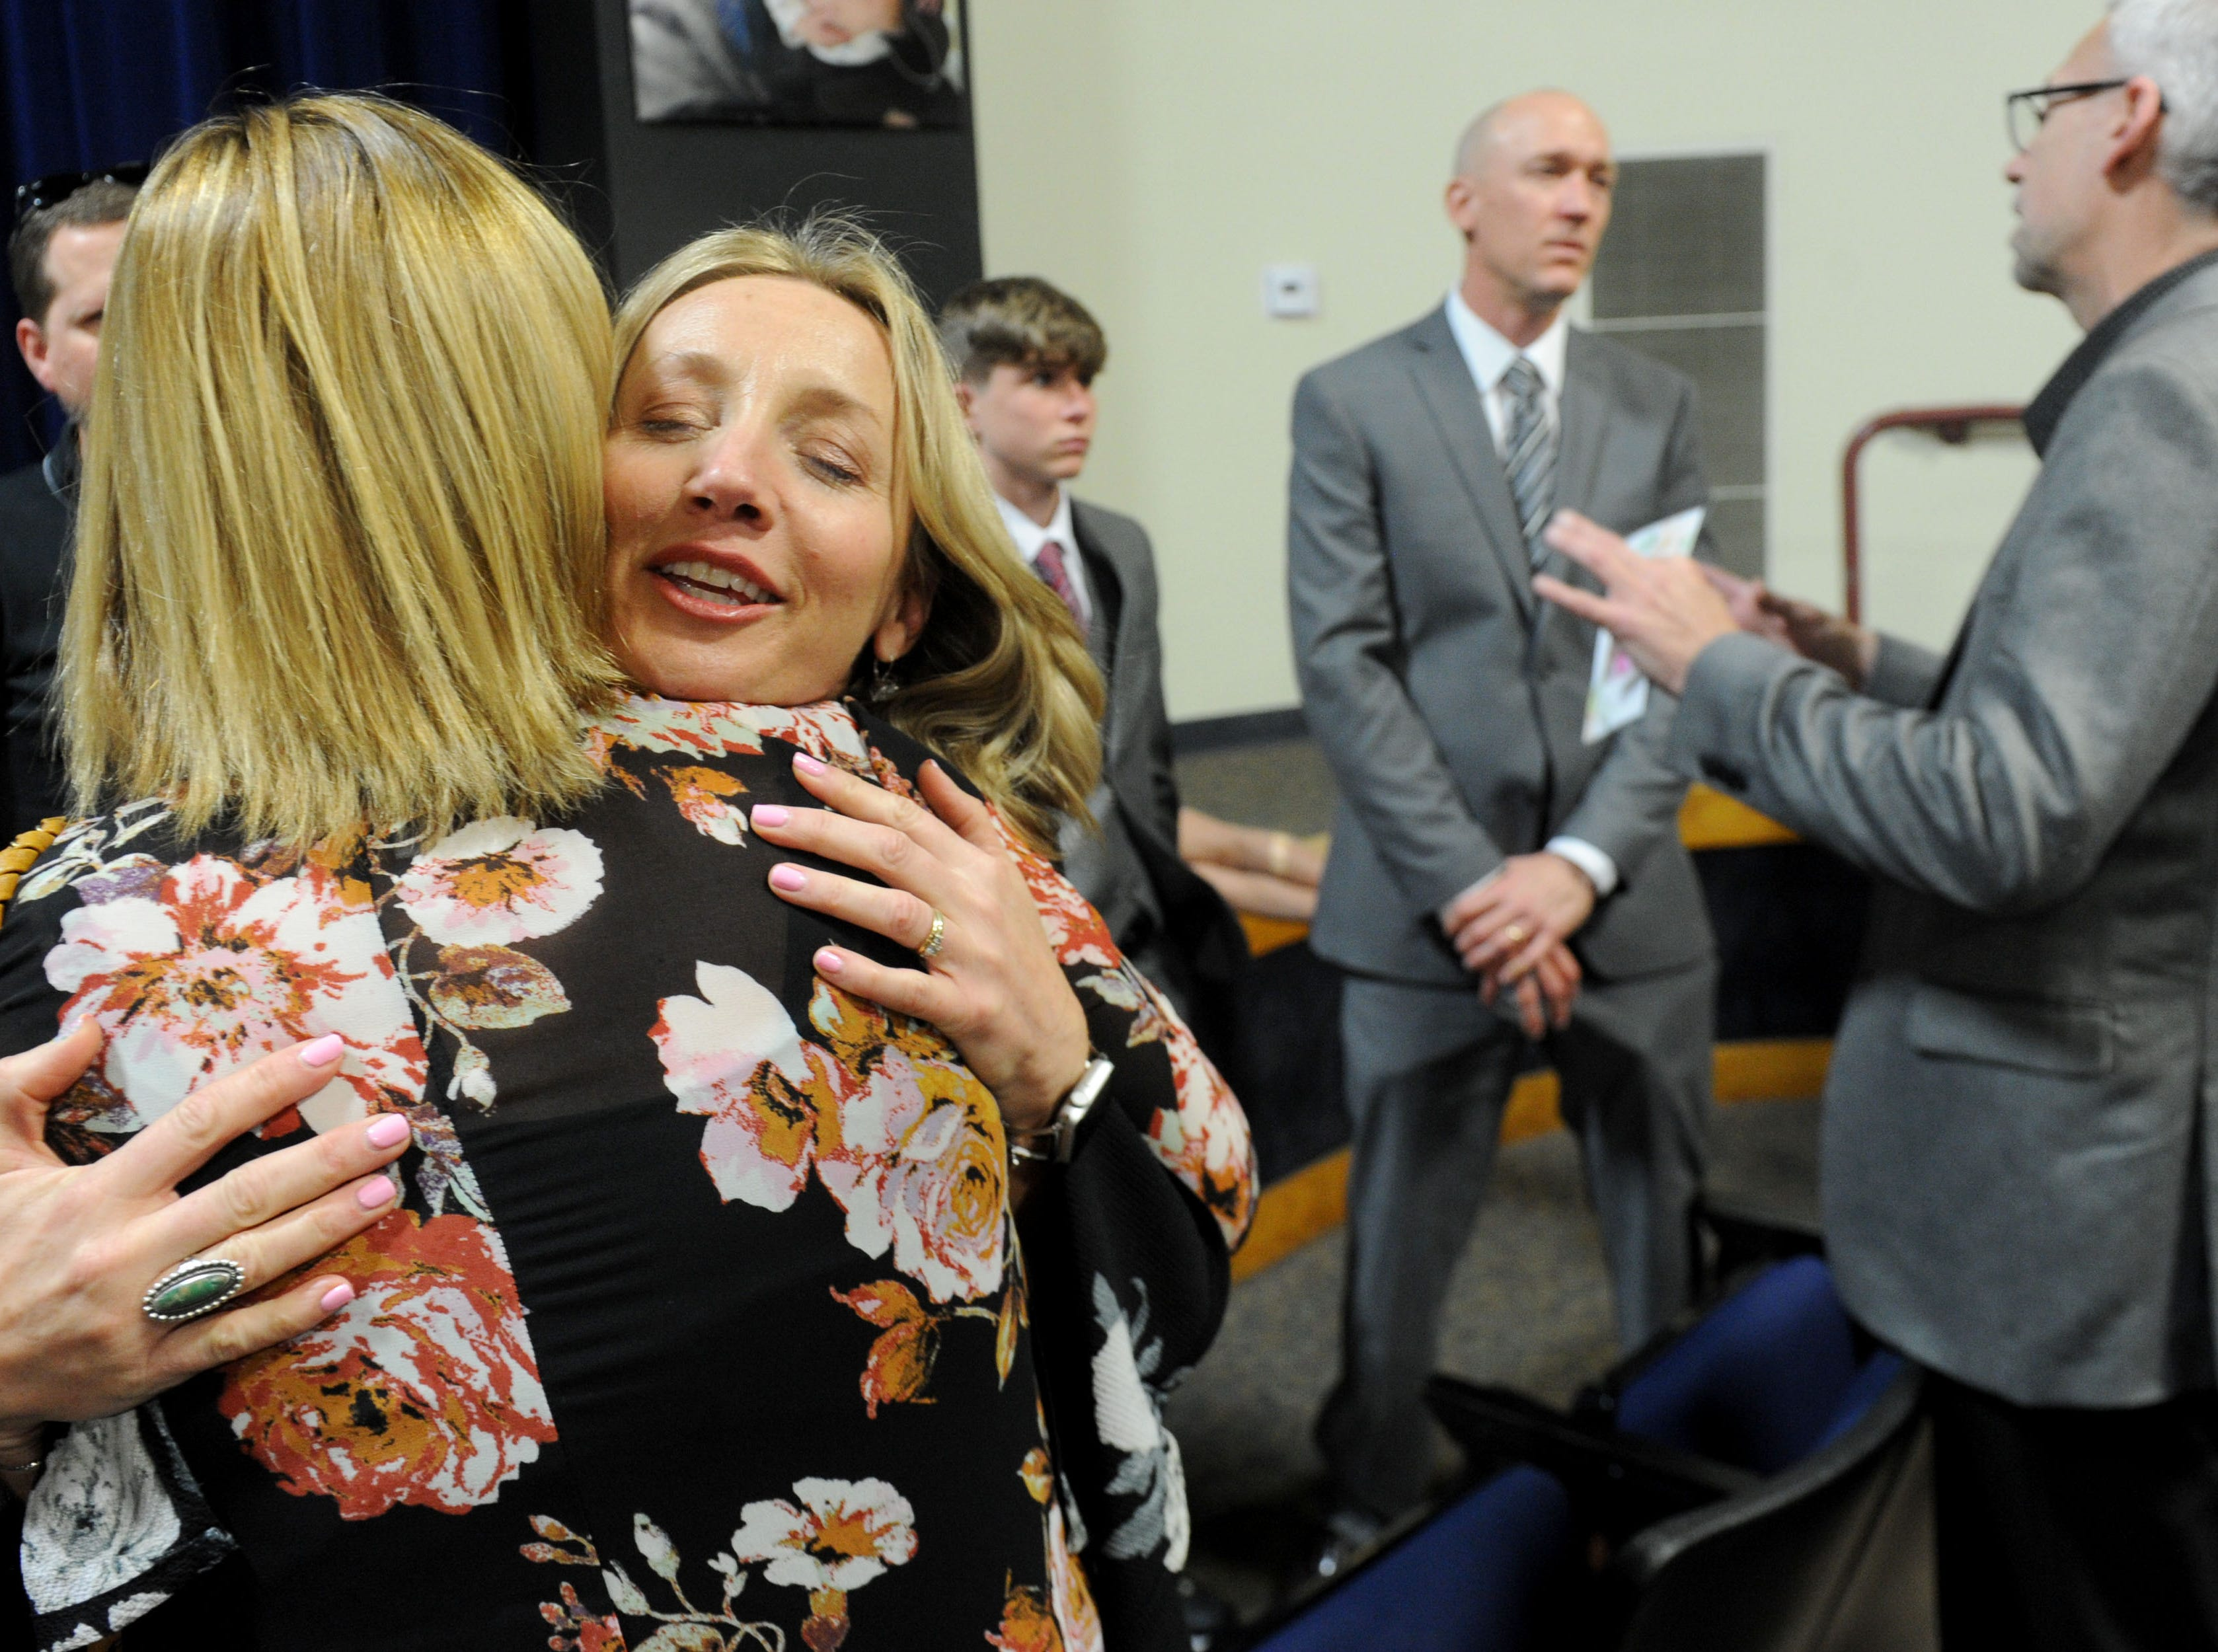 Karen Rogers hugs Renee Lawson at the memorial service for Kimberly Lopez on Saturday in Oxnard. Rogers is the former foster mother for Kimberly Lopez. The Rogers family cared for Kimberly in the first year of her life, after she was removed from her parents' care for the first time.